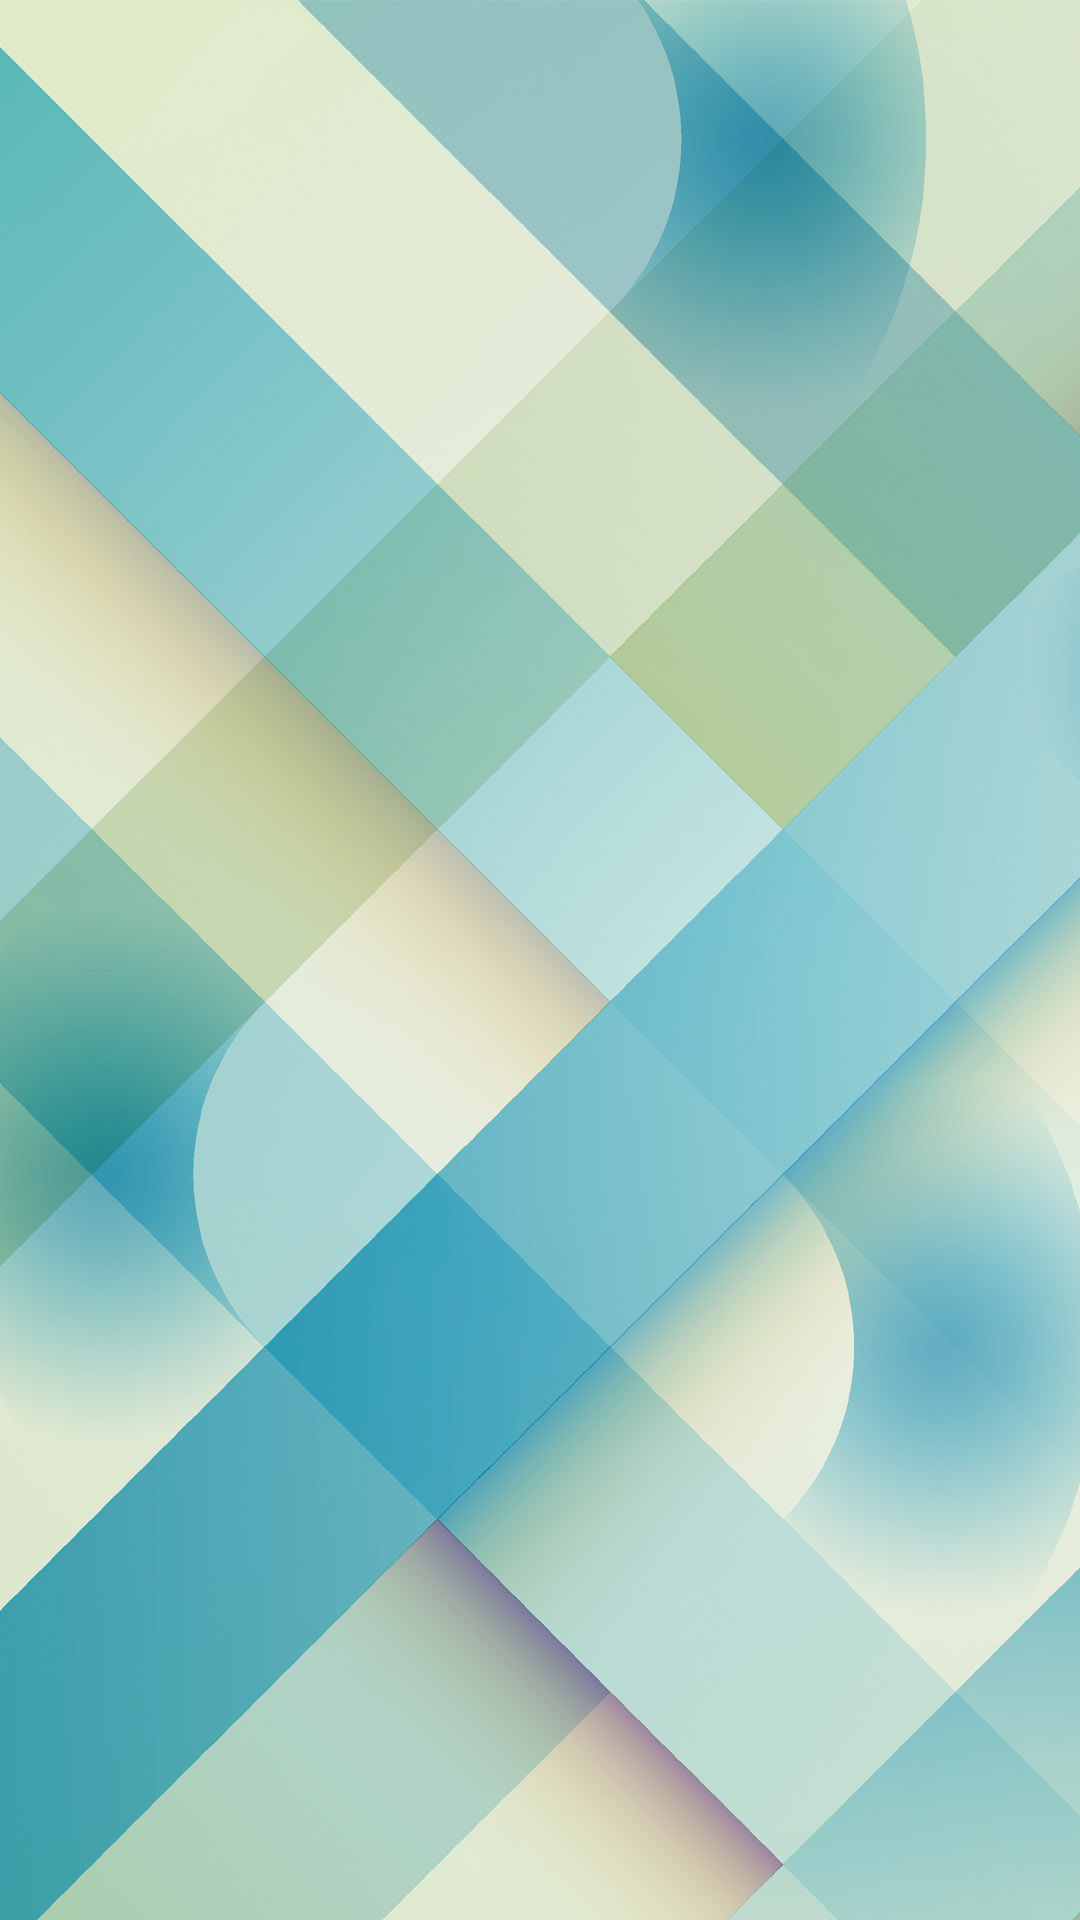 Pastel Blue Wallpaper Light Wallpapers For Android